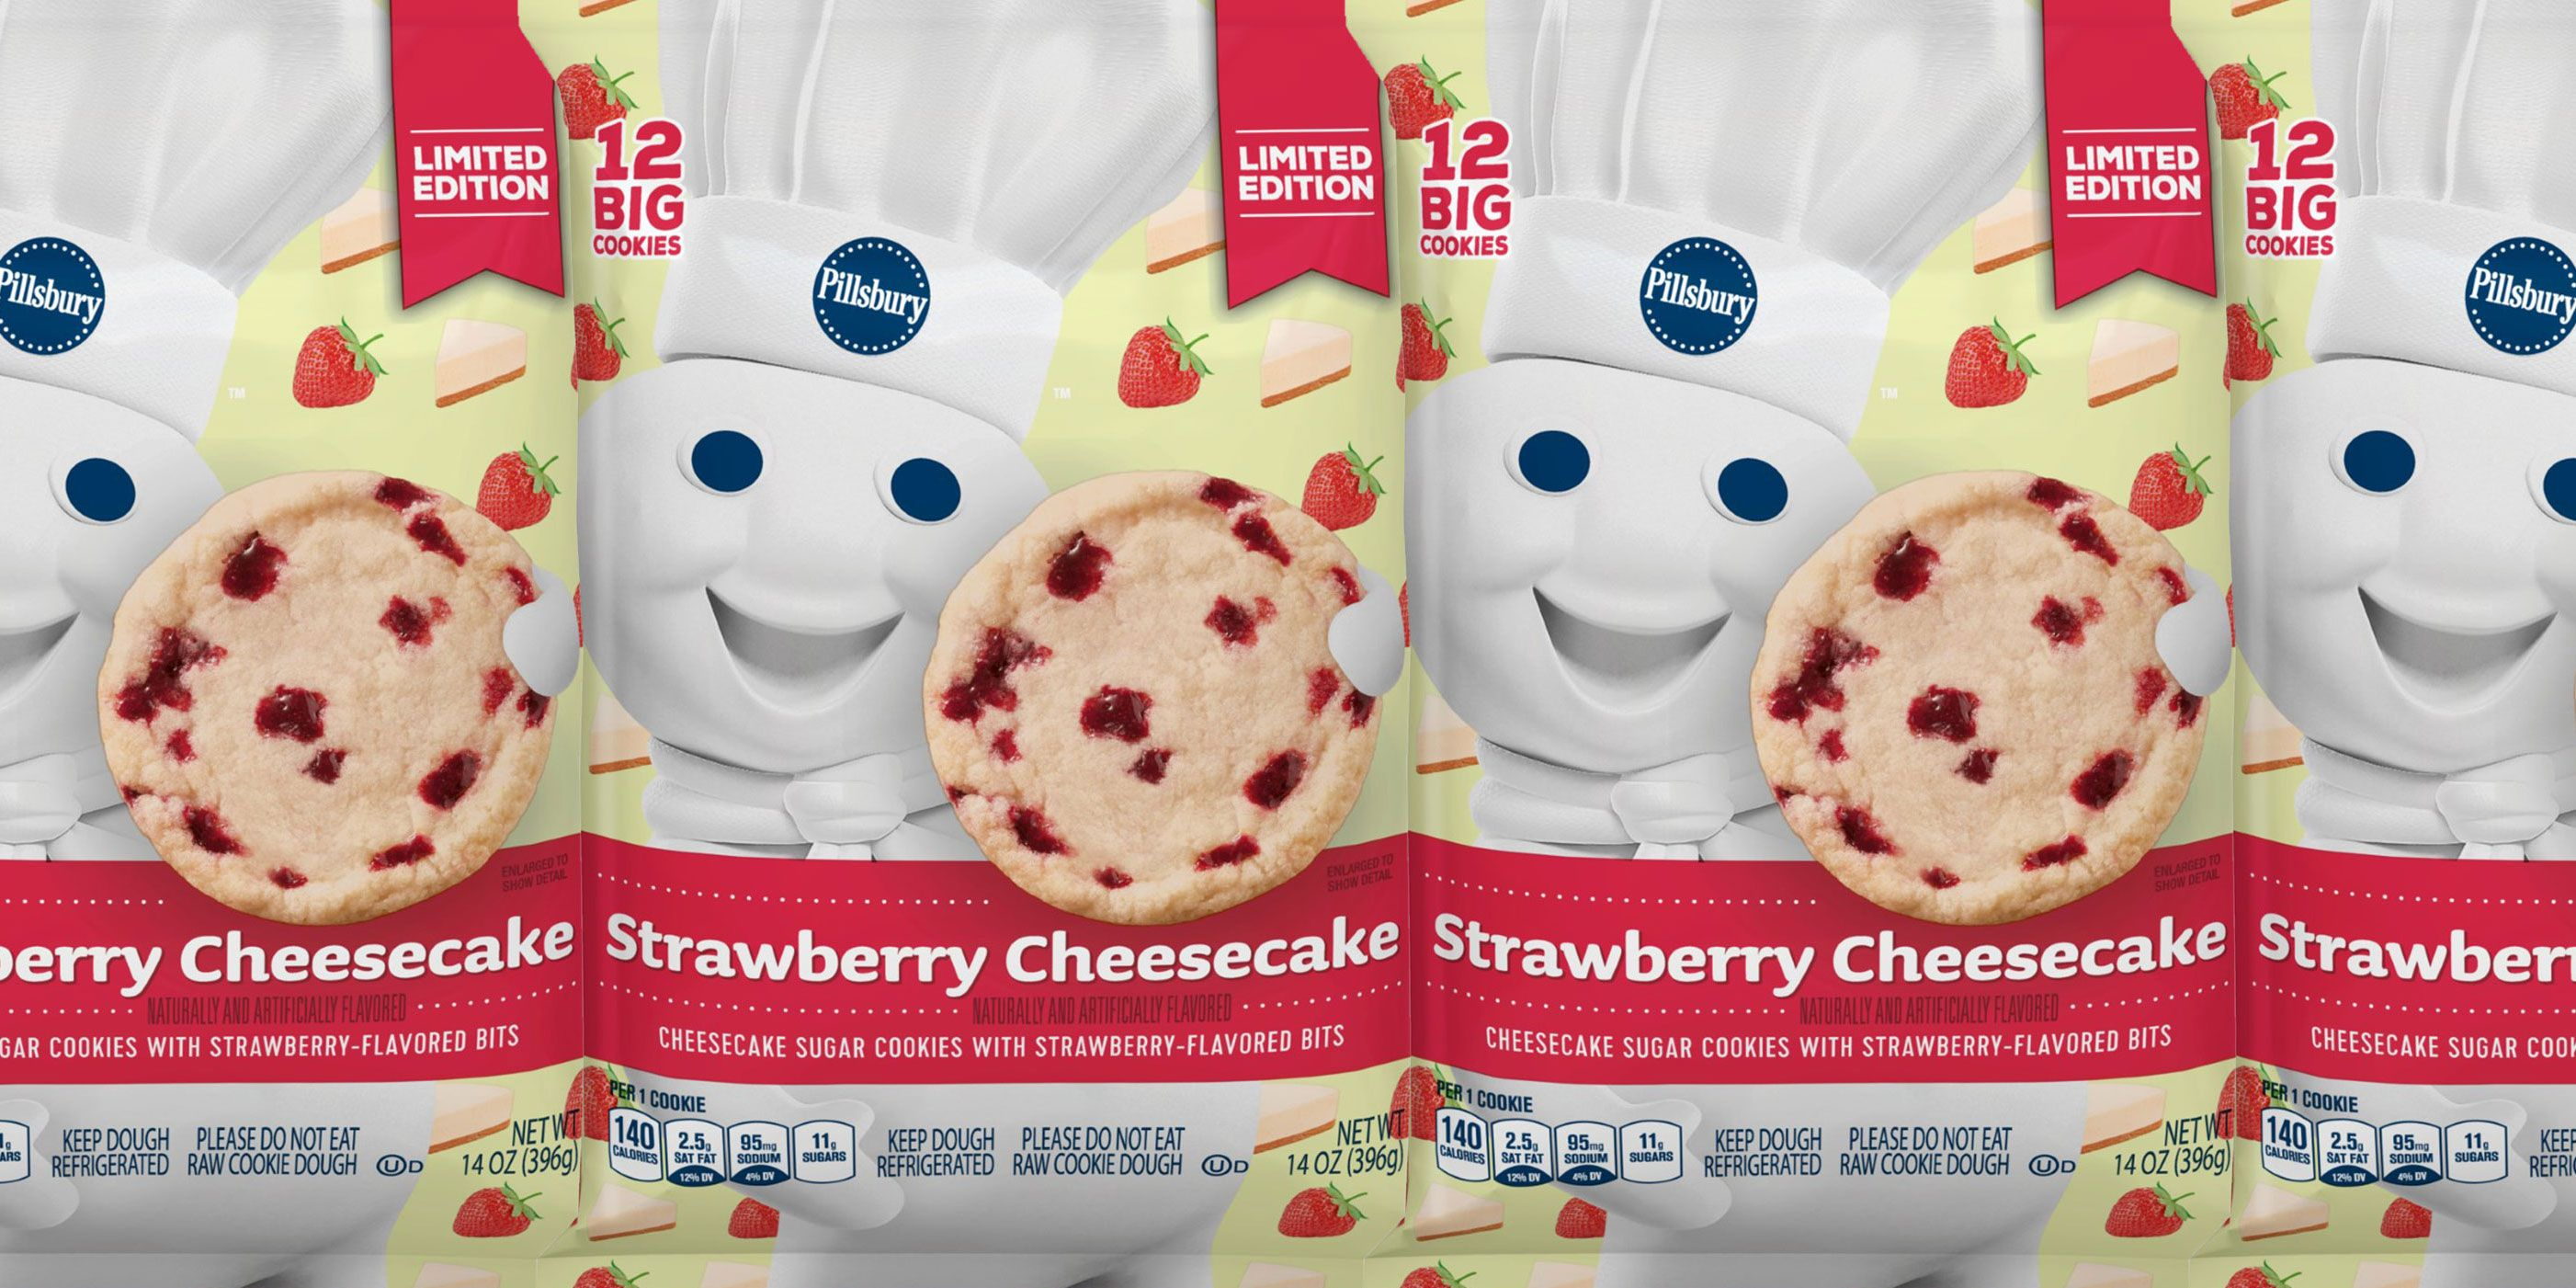 Pillsbury S Limited Edition Strawberry Cheesecake Sugar Cookies Are